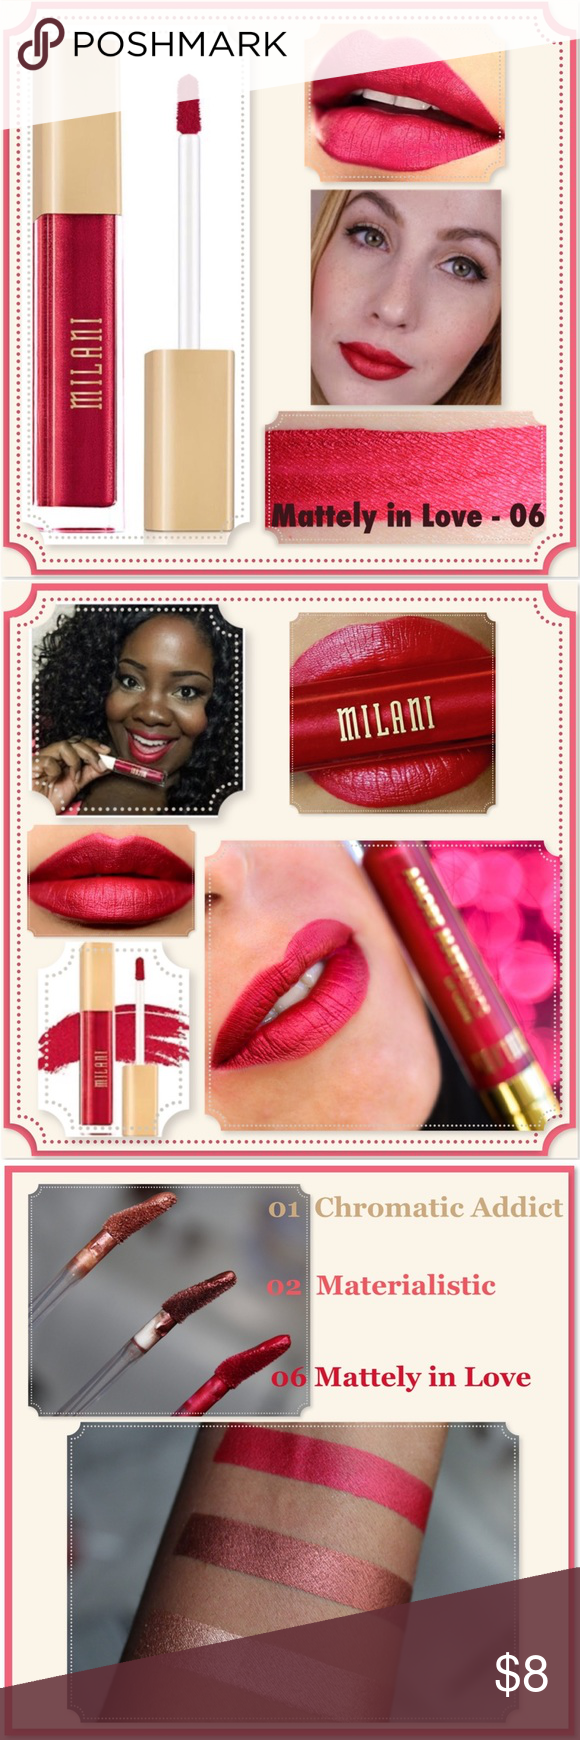 "🆕 MILANI Amore Metallic Matte Lip Mattely in love Paint your pout w/gilded glamour in ""Mattely in Love 06"" a limited edition shade of metallic matte liquid lip crème.  Bold & richly pigmented this metallic liquid lip color shines w/a soft luster & dries to a smooth matte finish, w/o drying out your lips!  Waterproof & kiss-approved, Amore Mattallics Lip Crème delivers up to 16hrs of wear.  Remove w/oil-based longwear lip color remover.  A stunning red w/hints of pink & gold undertones, that loo"